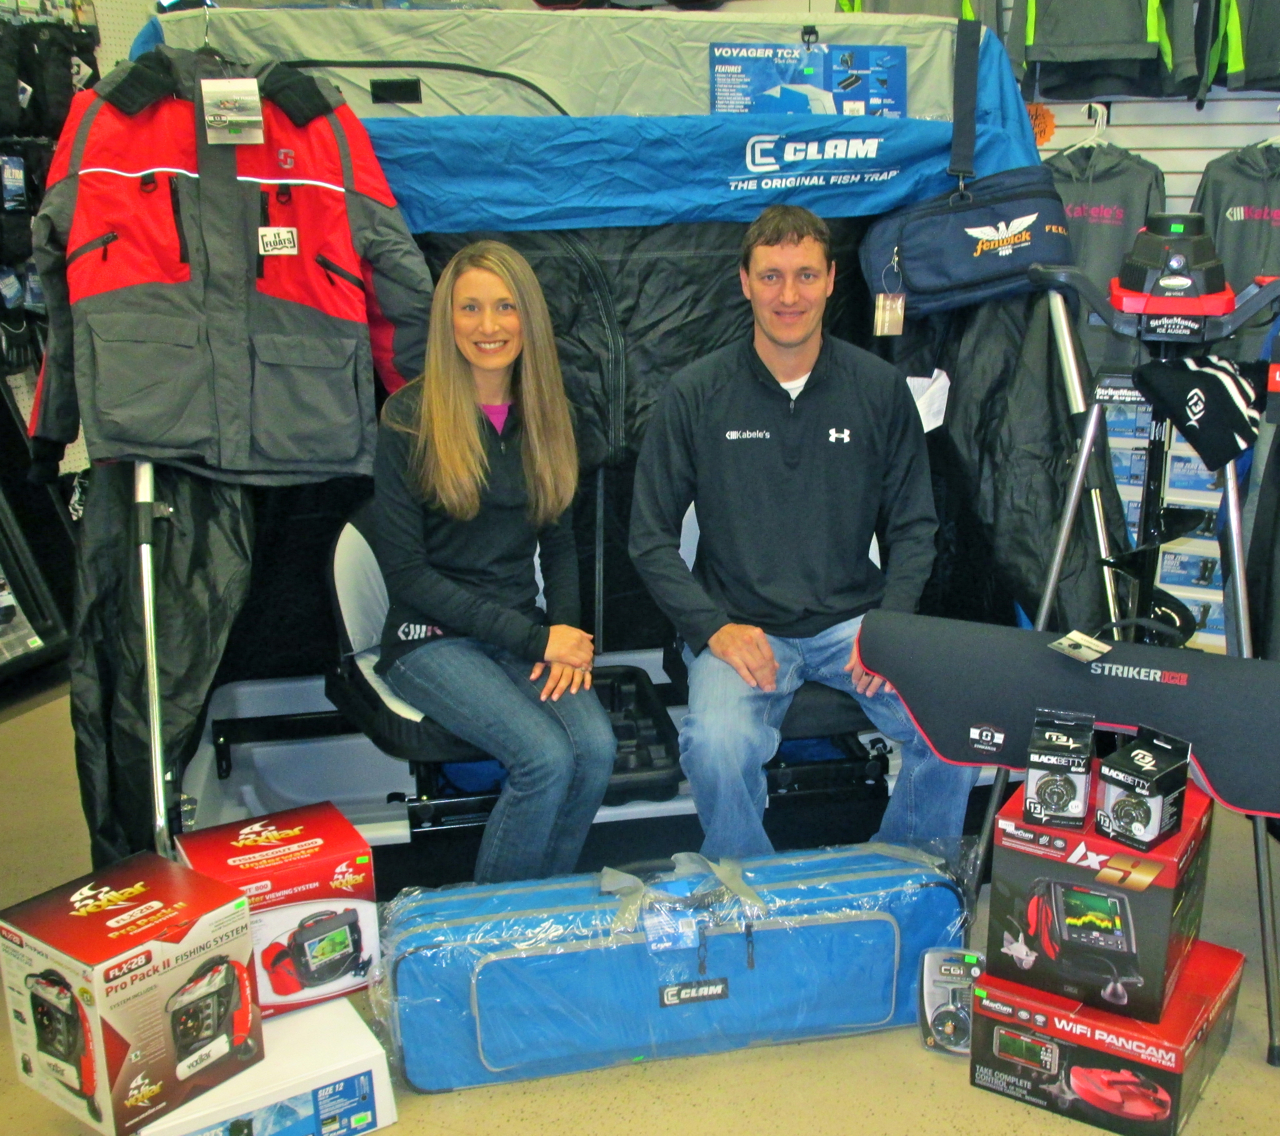 "(photo by Steve Weisman) Ice fishing gear is taking over at Kabele's Trading Post. Owners Tanya and Thane Johnson sit in the middle of just a sampling of the ice fishing products people will see at the third annual ""Shop with the Pros"" day on Saturday, November 15."